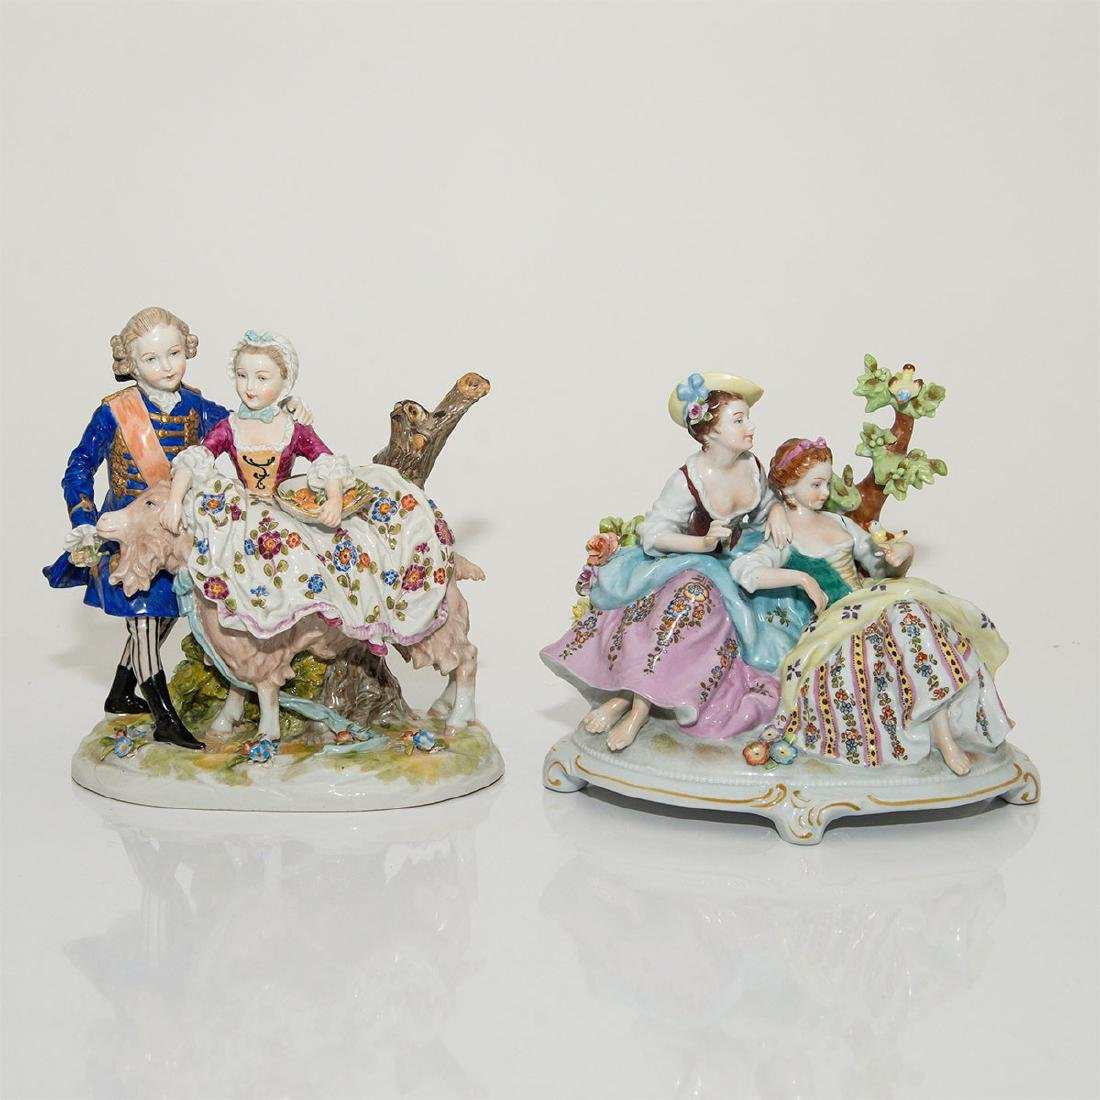 GROUP OF 2 LARGE ANTIQUE GERMAN GROUP FIGURINES